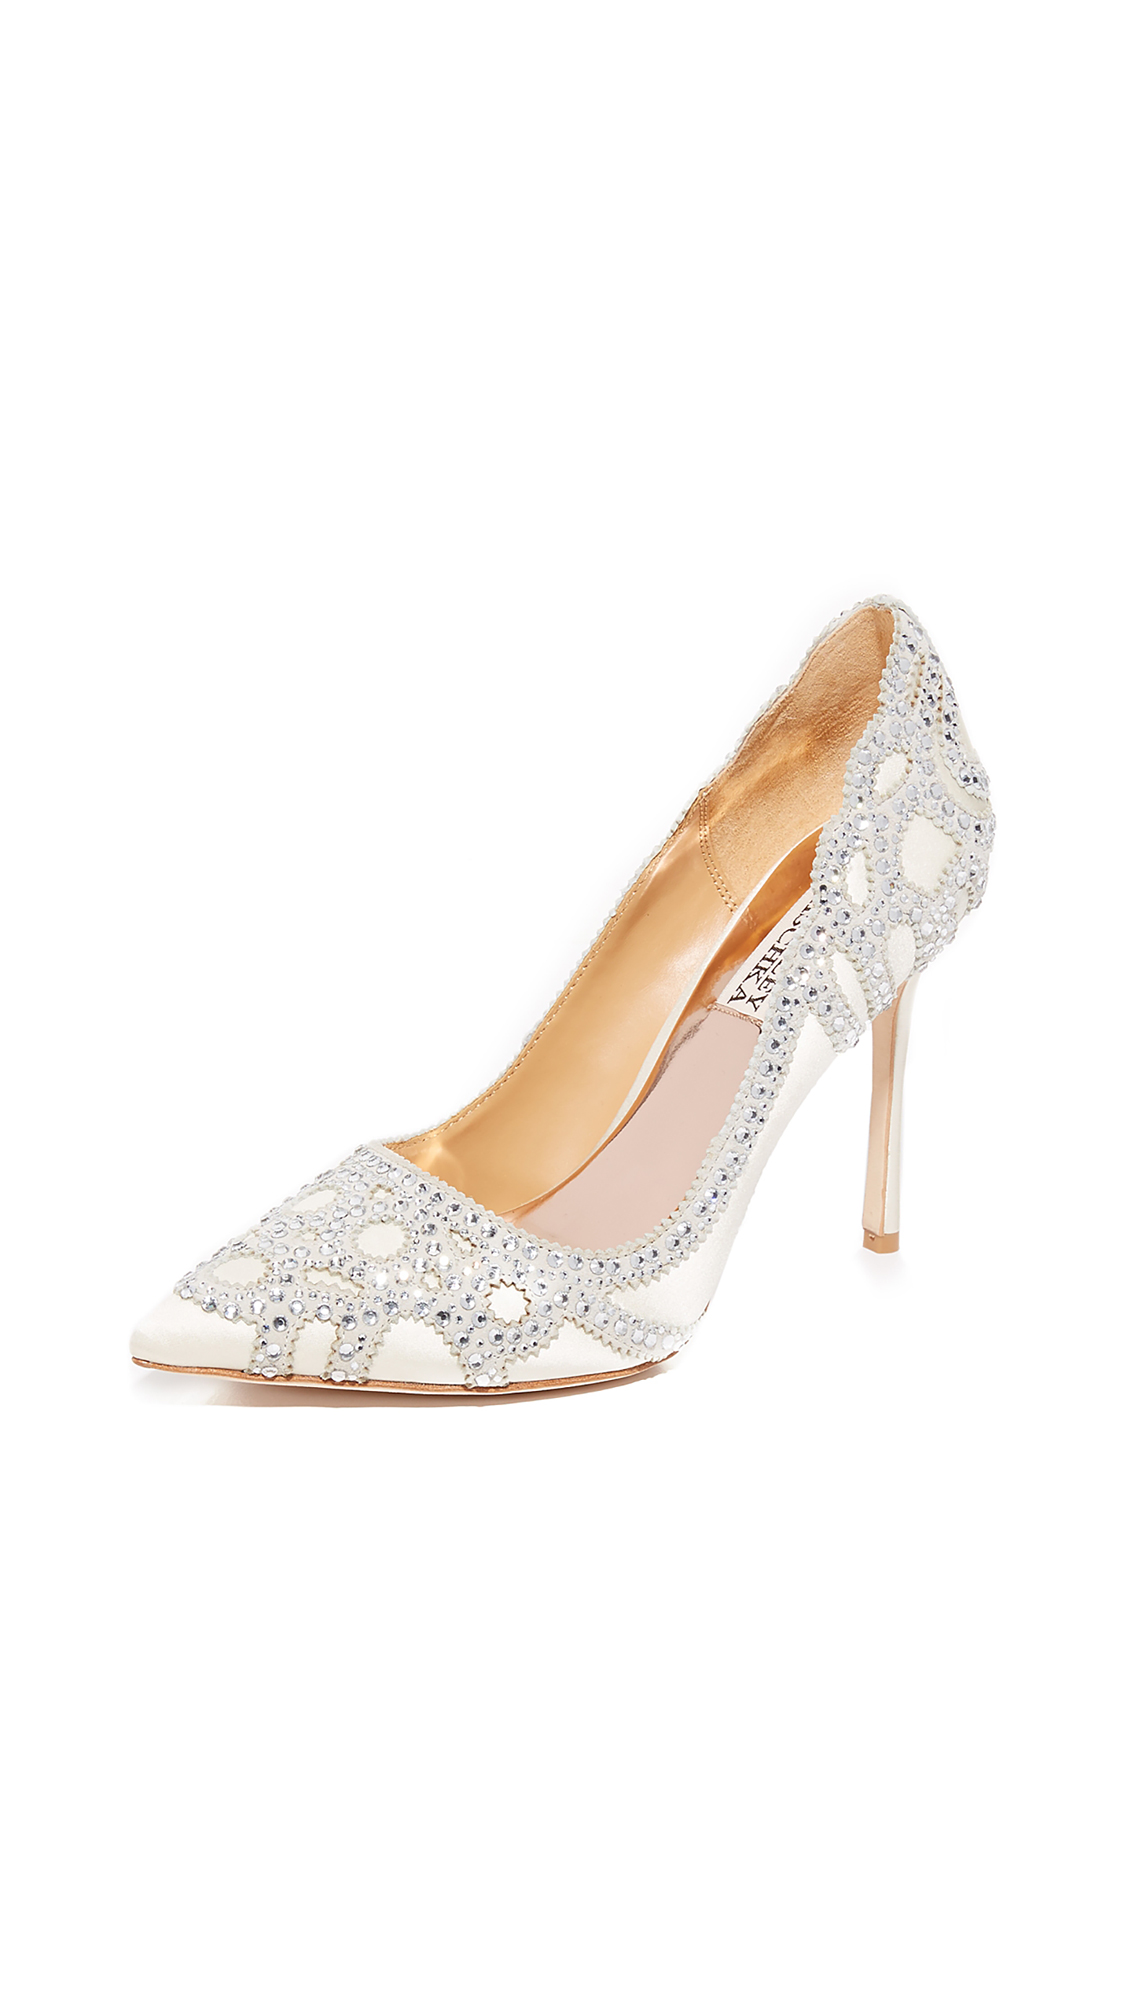 Badgley Mischka Rouge Pumps - Ivory